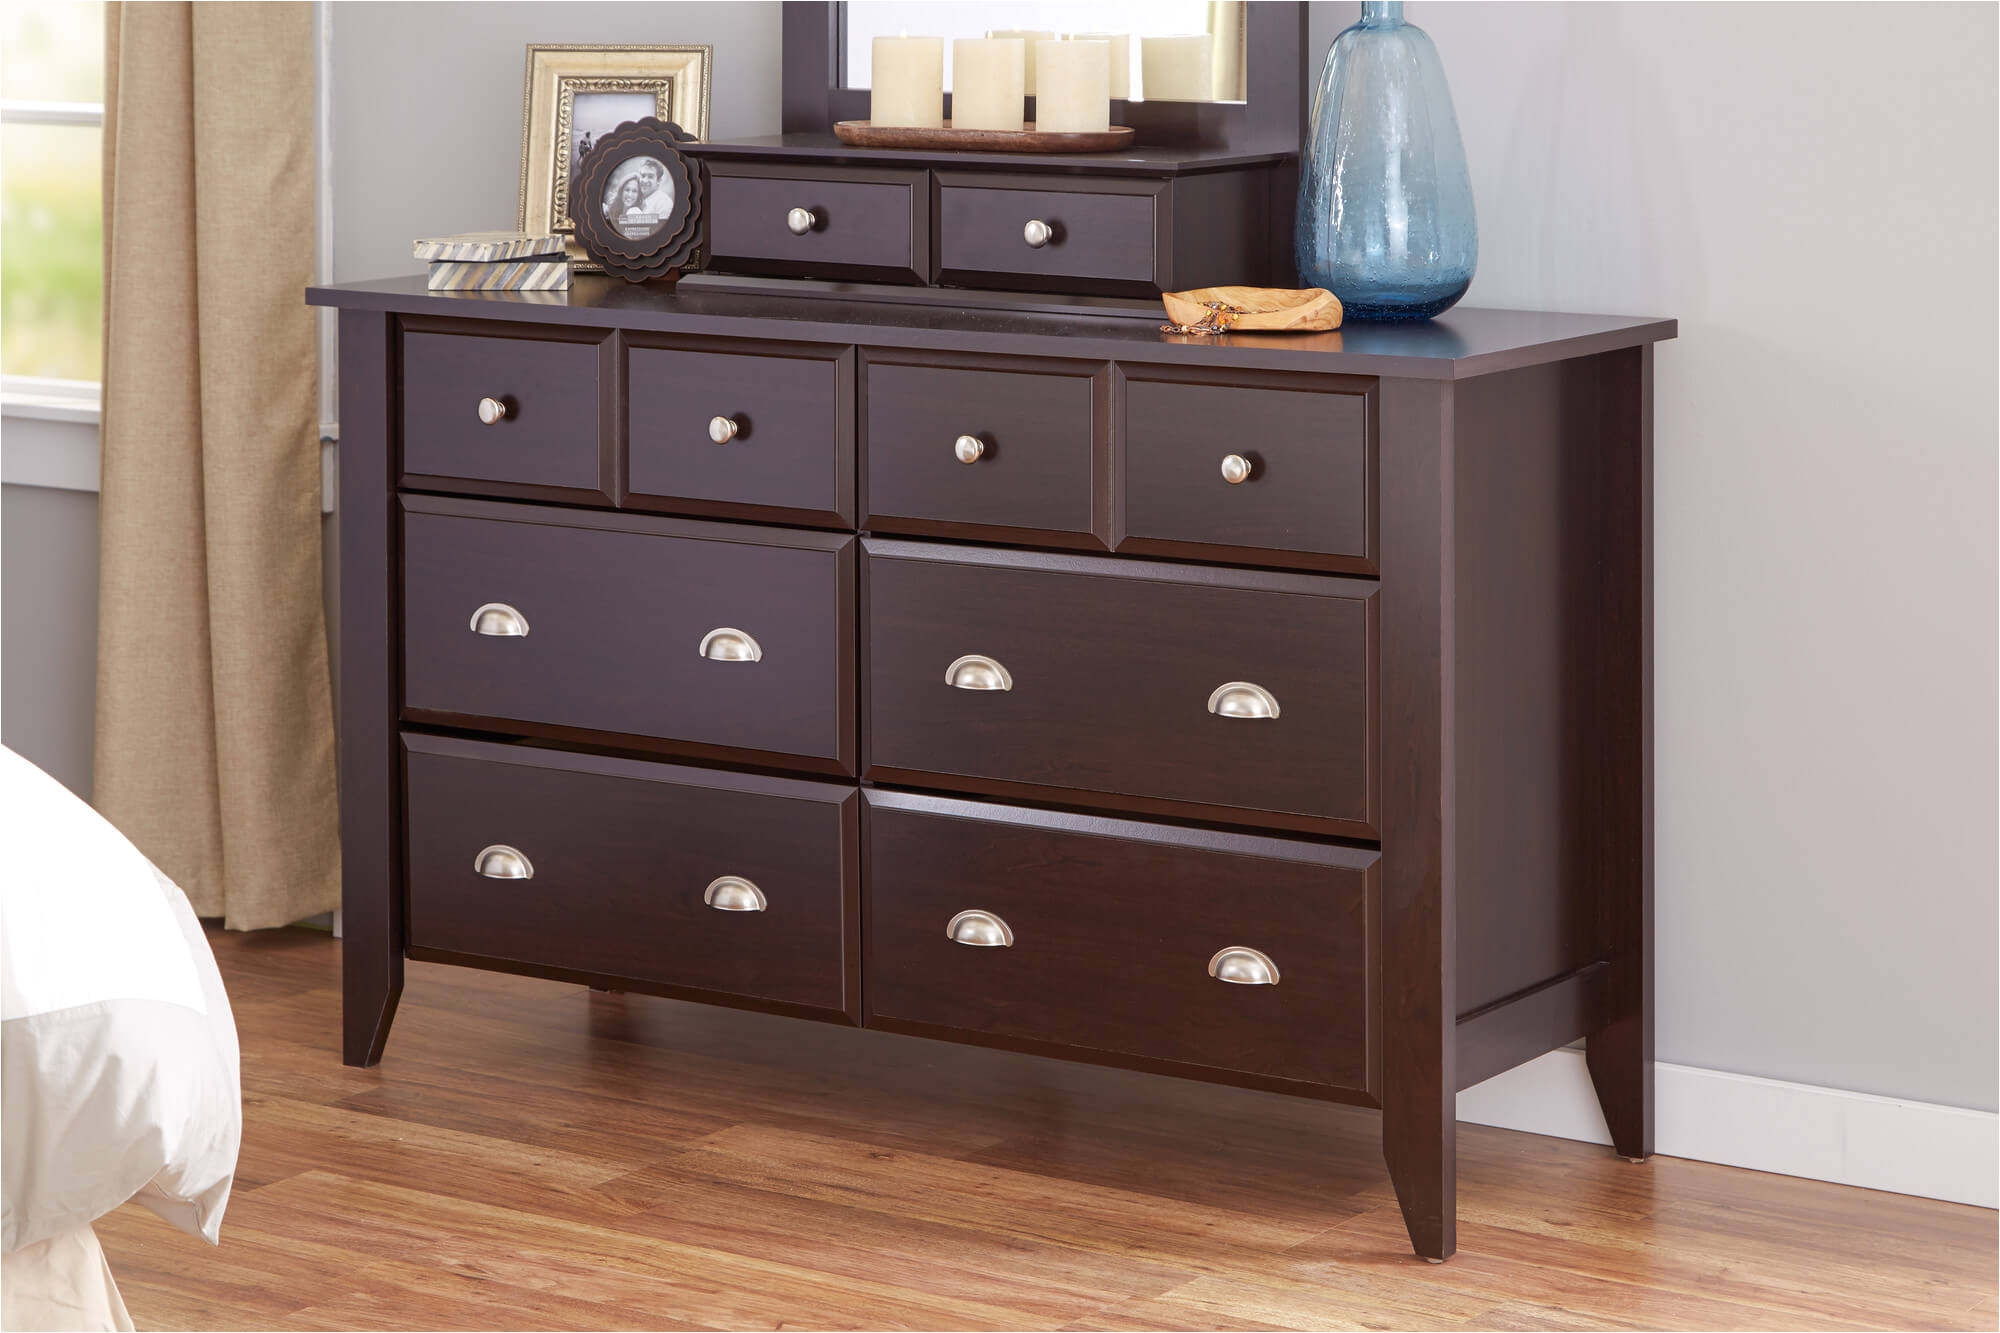 Shallow Dressers for Small Spaces Discover 15 Types Of Dressers for Your Bedroom Guide